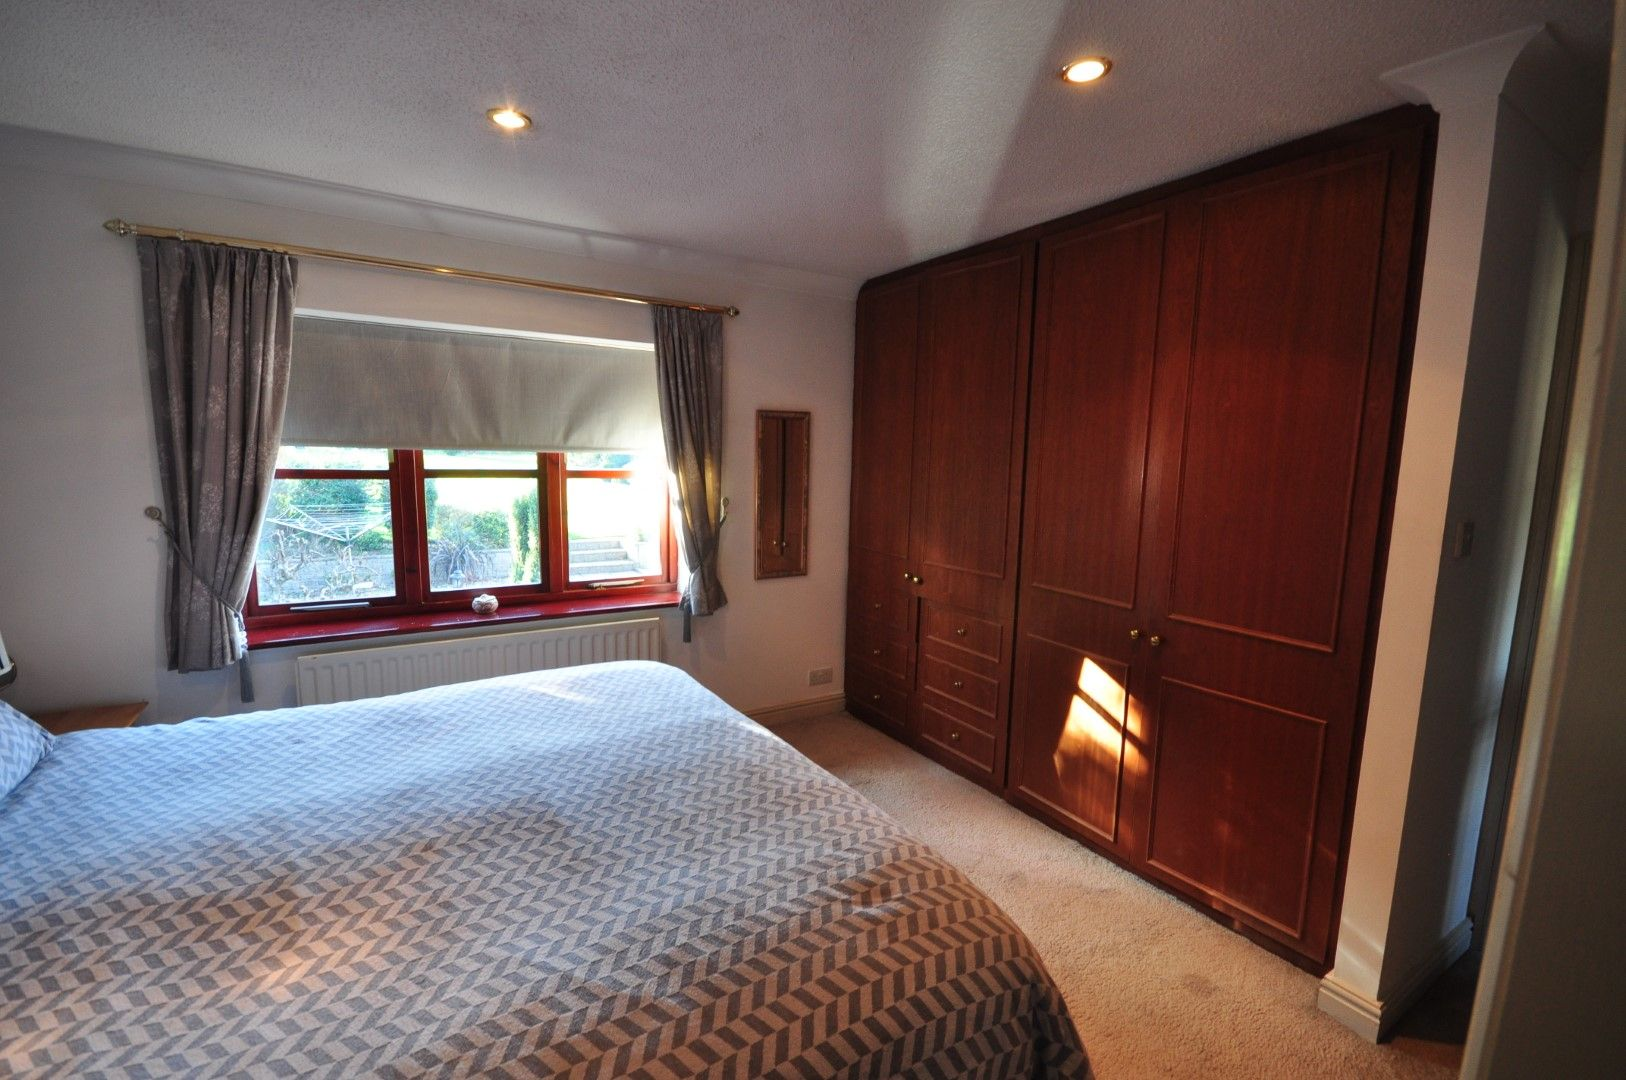 Image 2 of 2 of Bedroom One (Rear Left), on Accommodation Comprising for